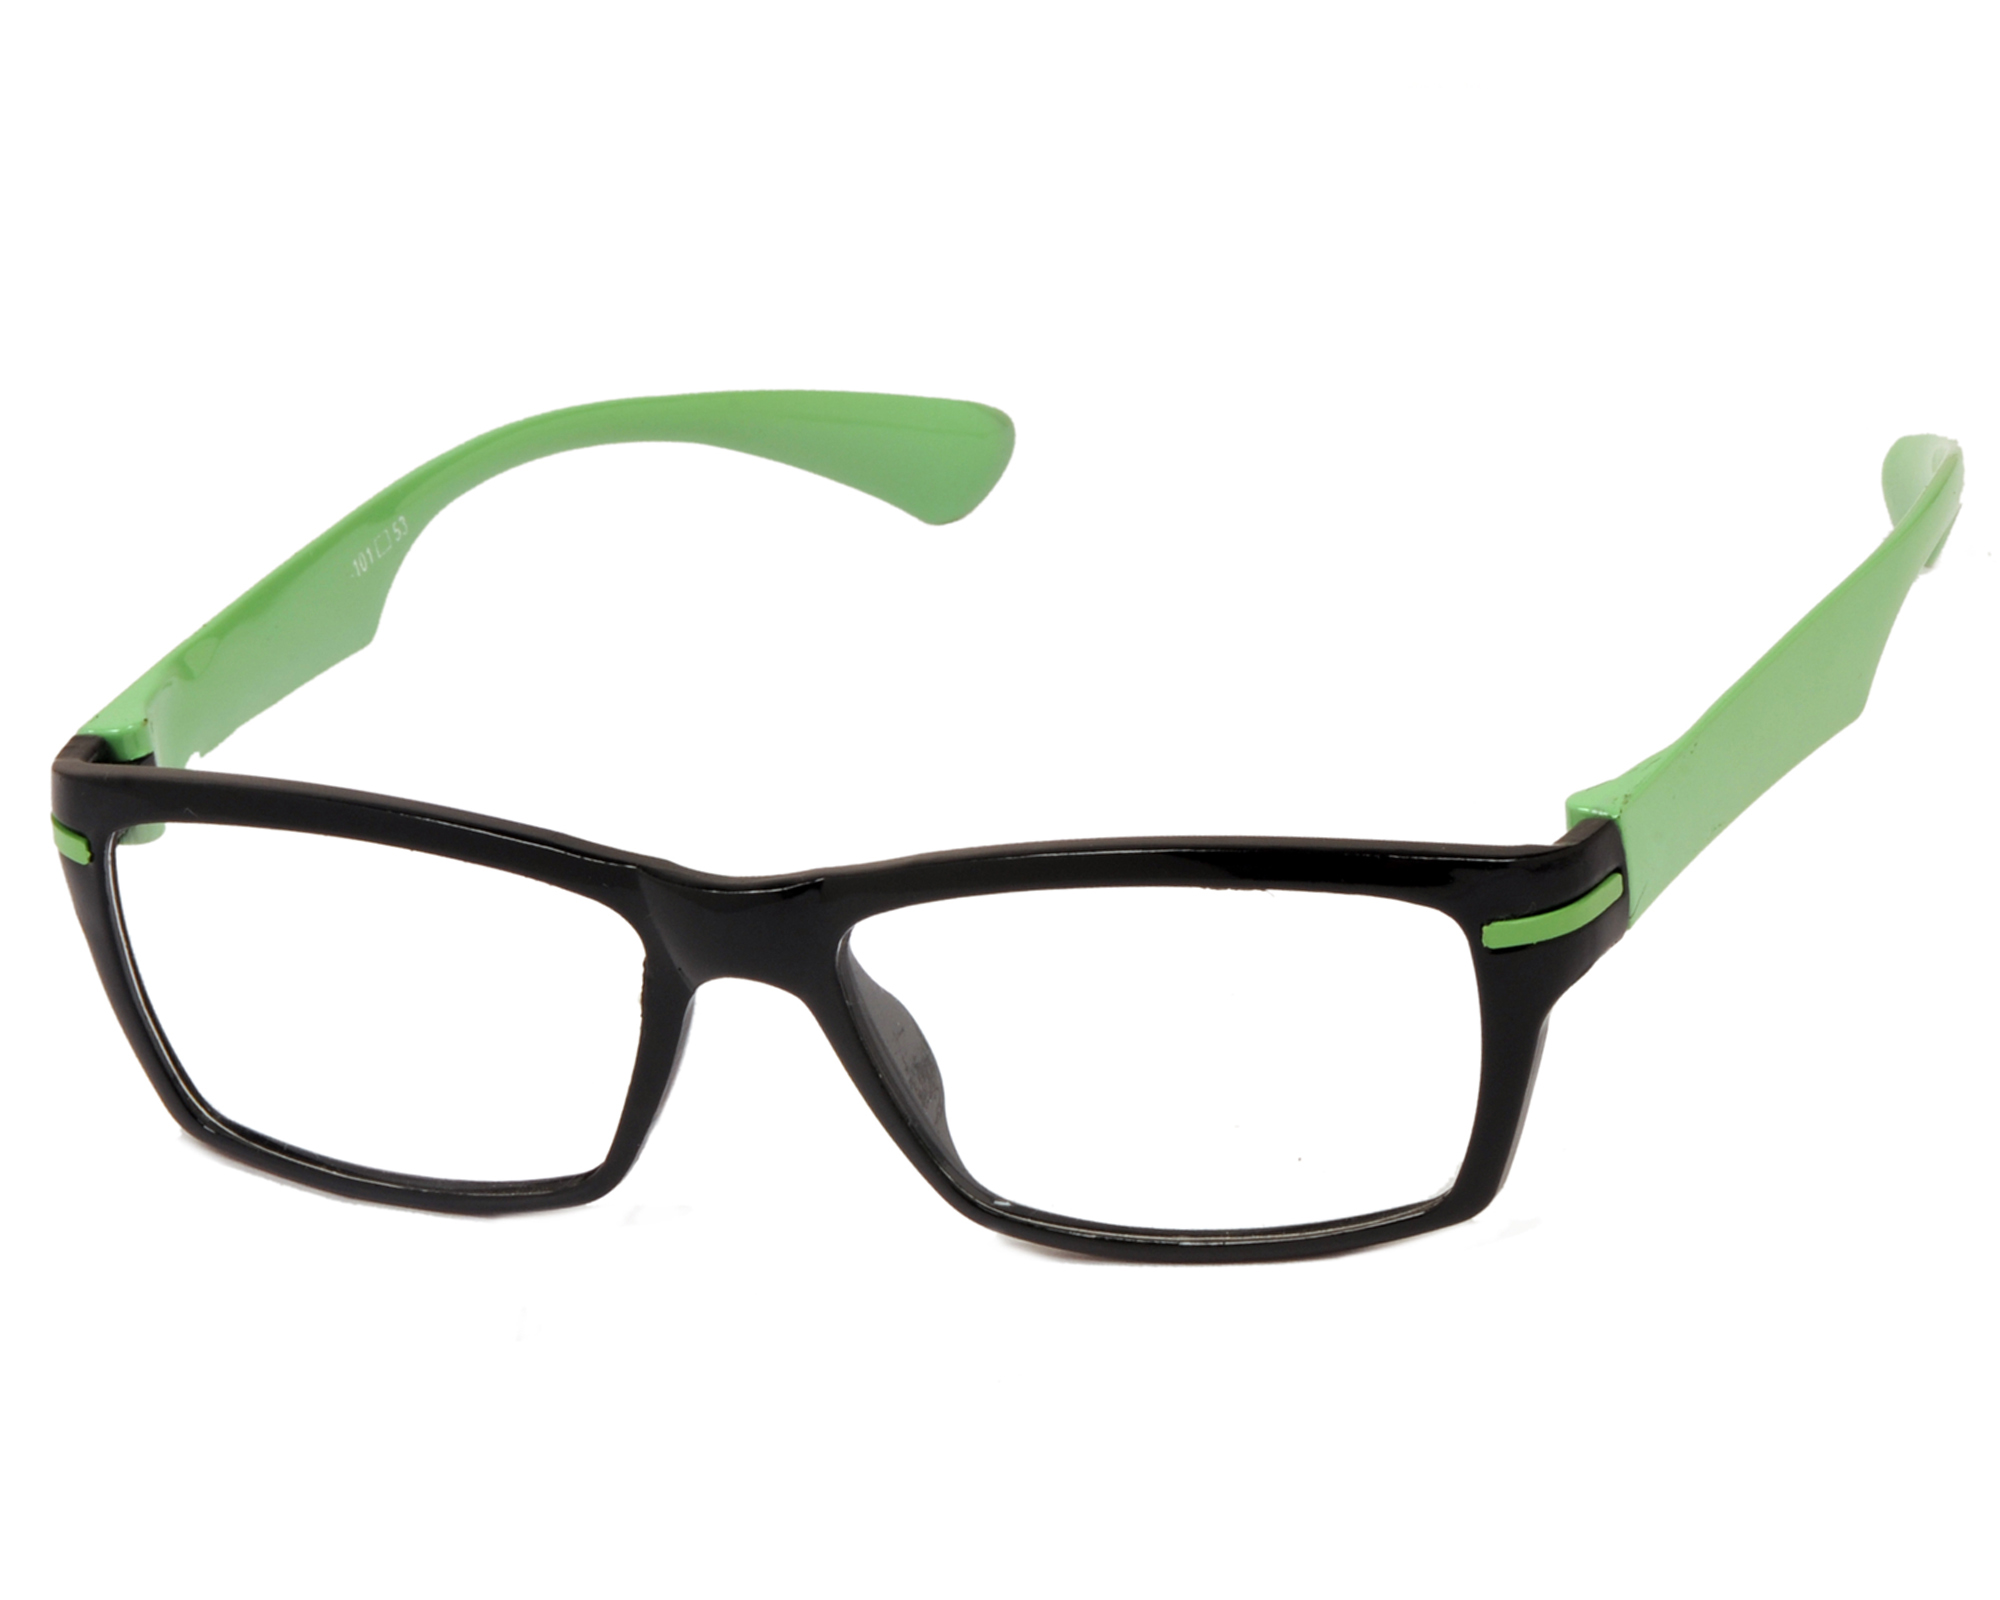 Eyeglasses Frames Green : Aoito Black Front Green Temples Spectacles Frames ...